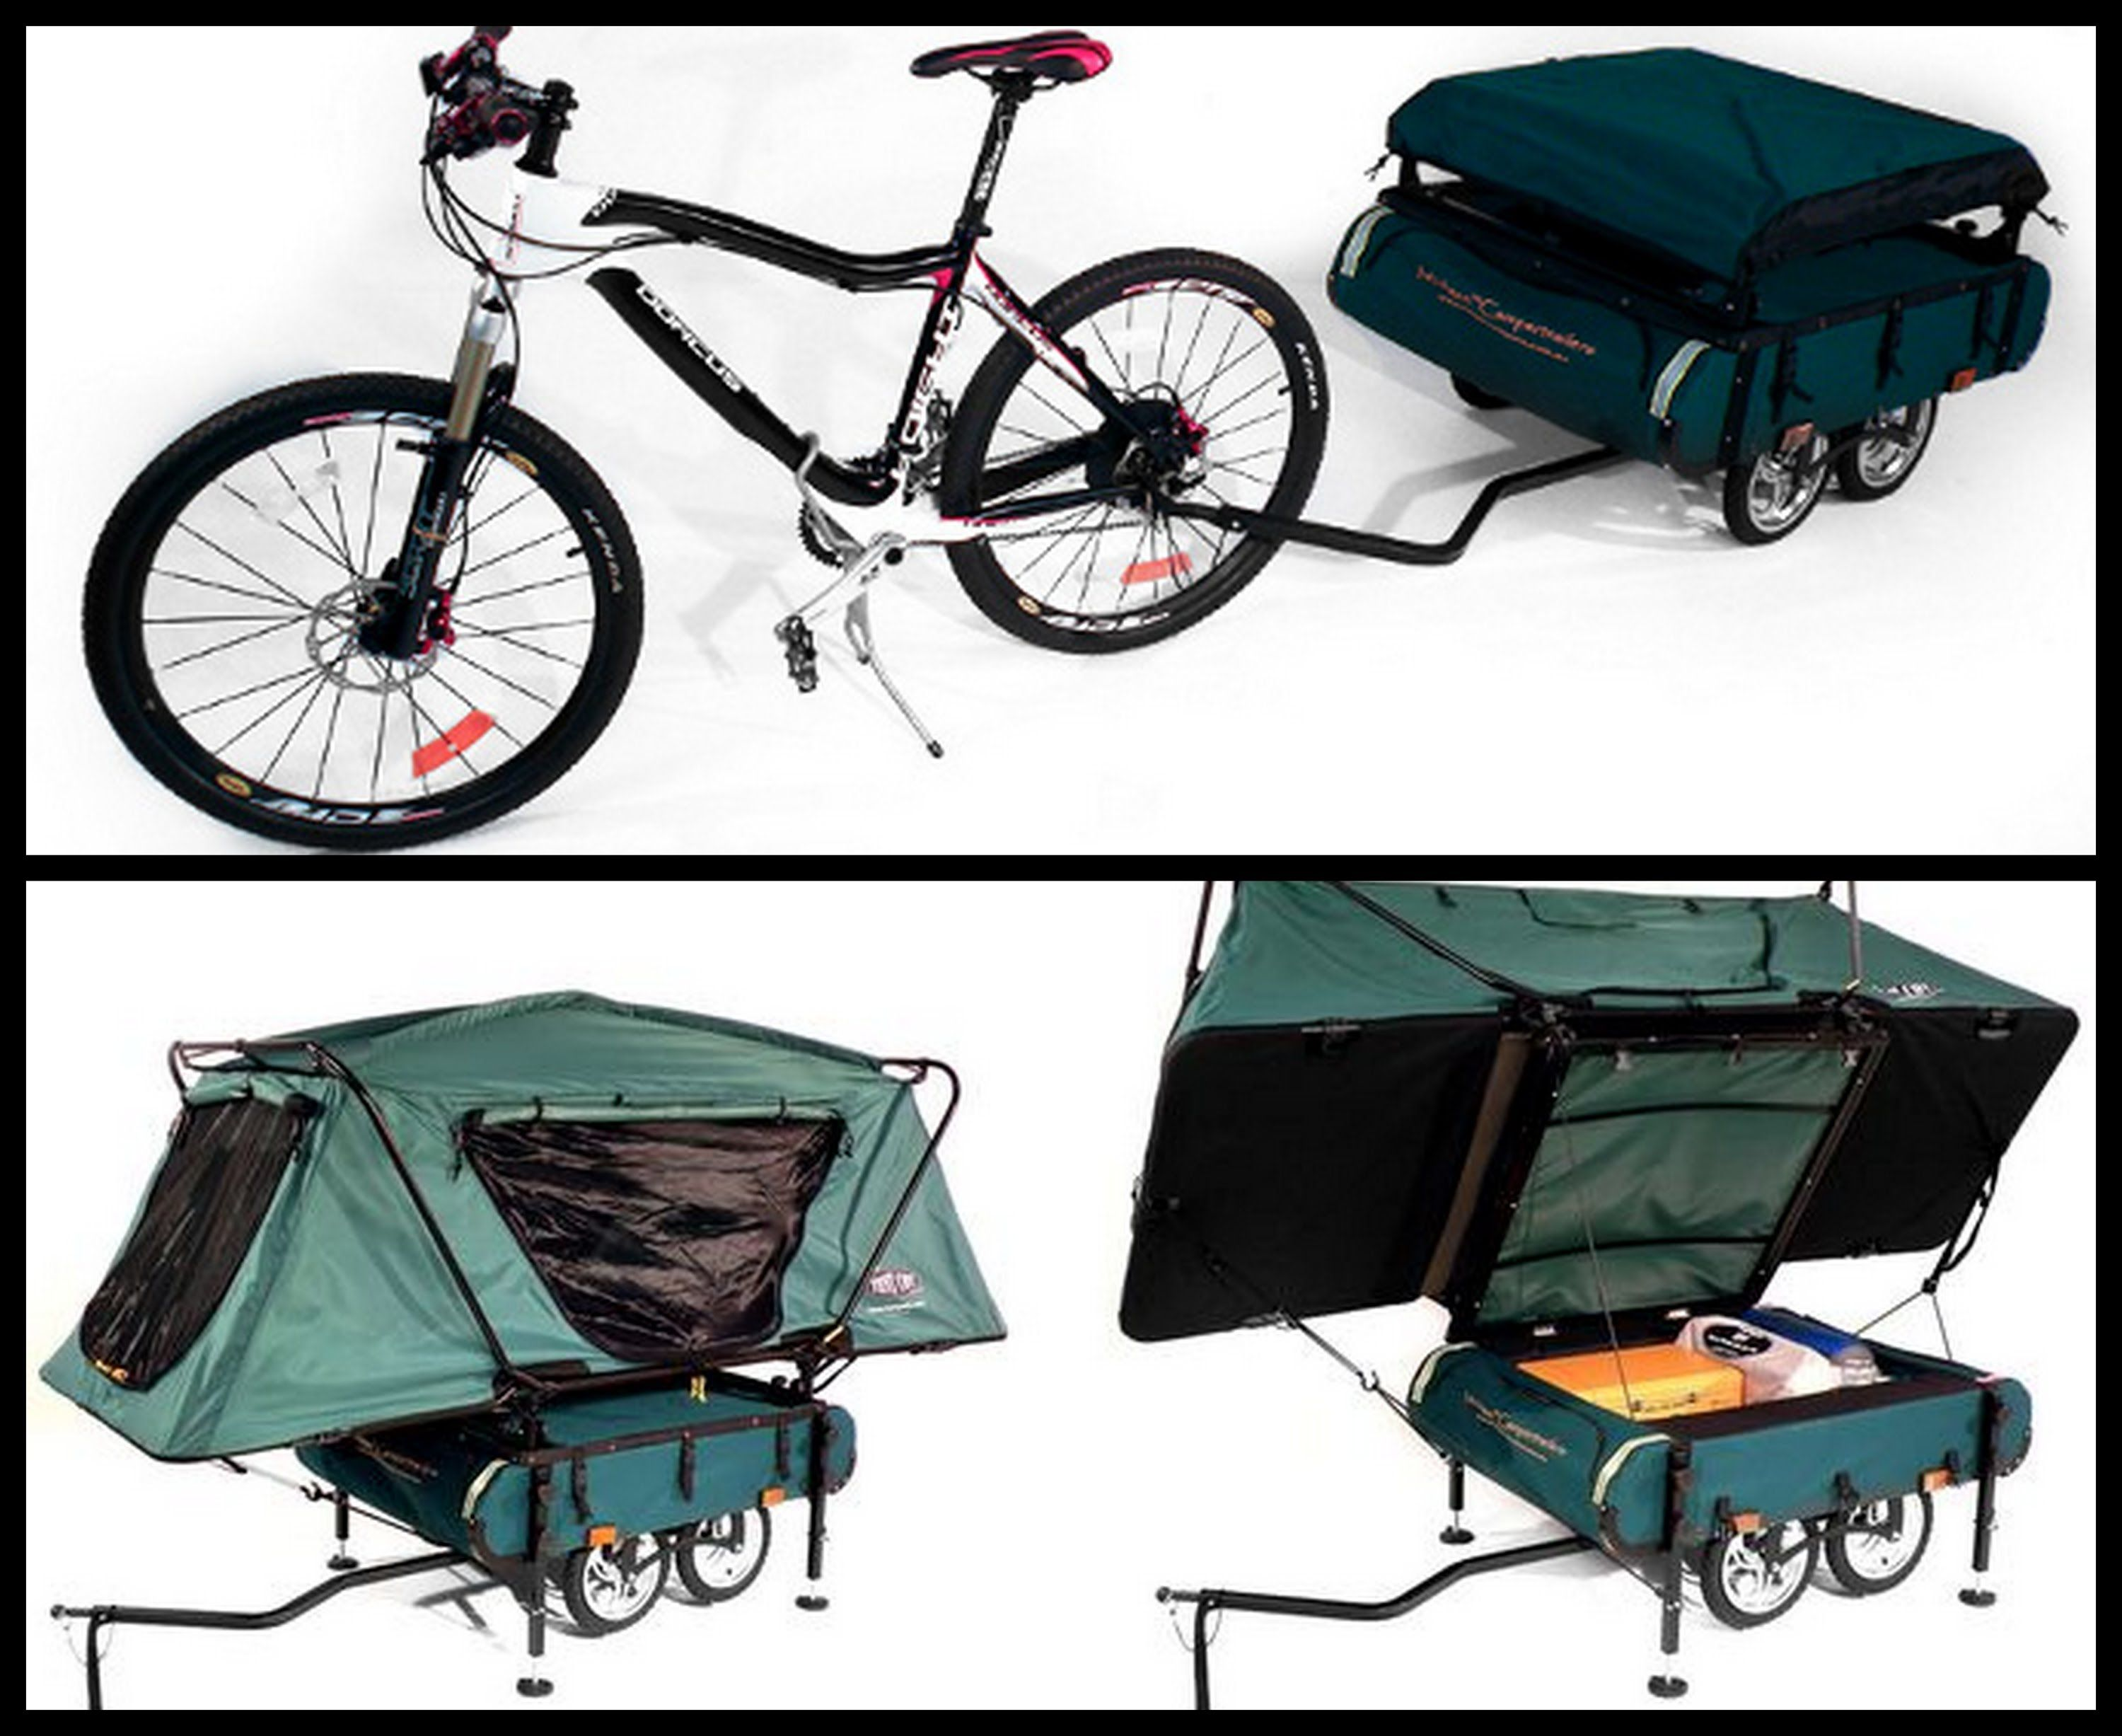 Bike Camper Trailer Bushtrekka Bicycle Camper Trailer Cycling Pinterest